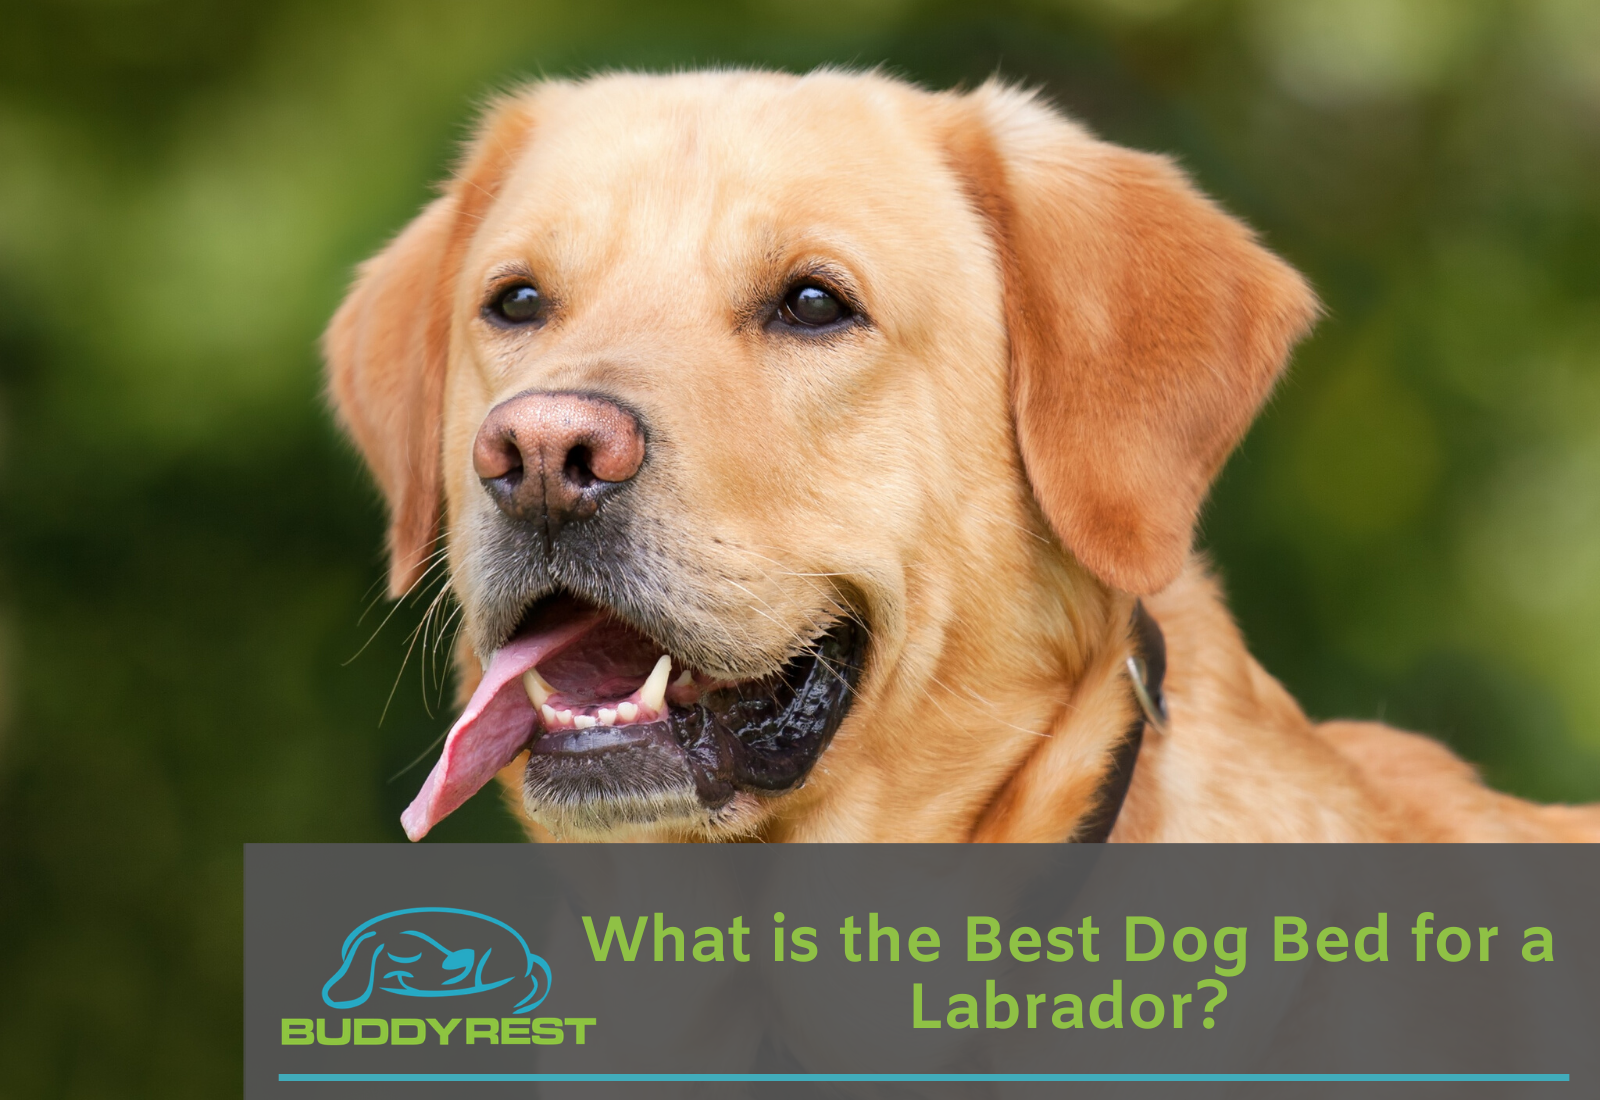 What is the Best Dog Bed for a Labrador?